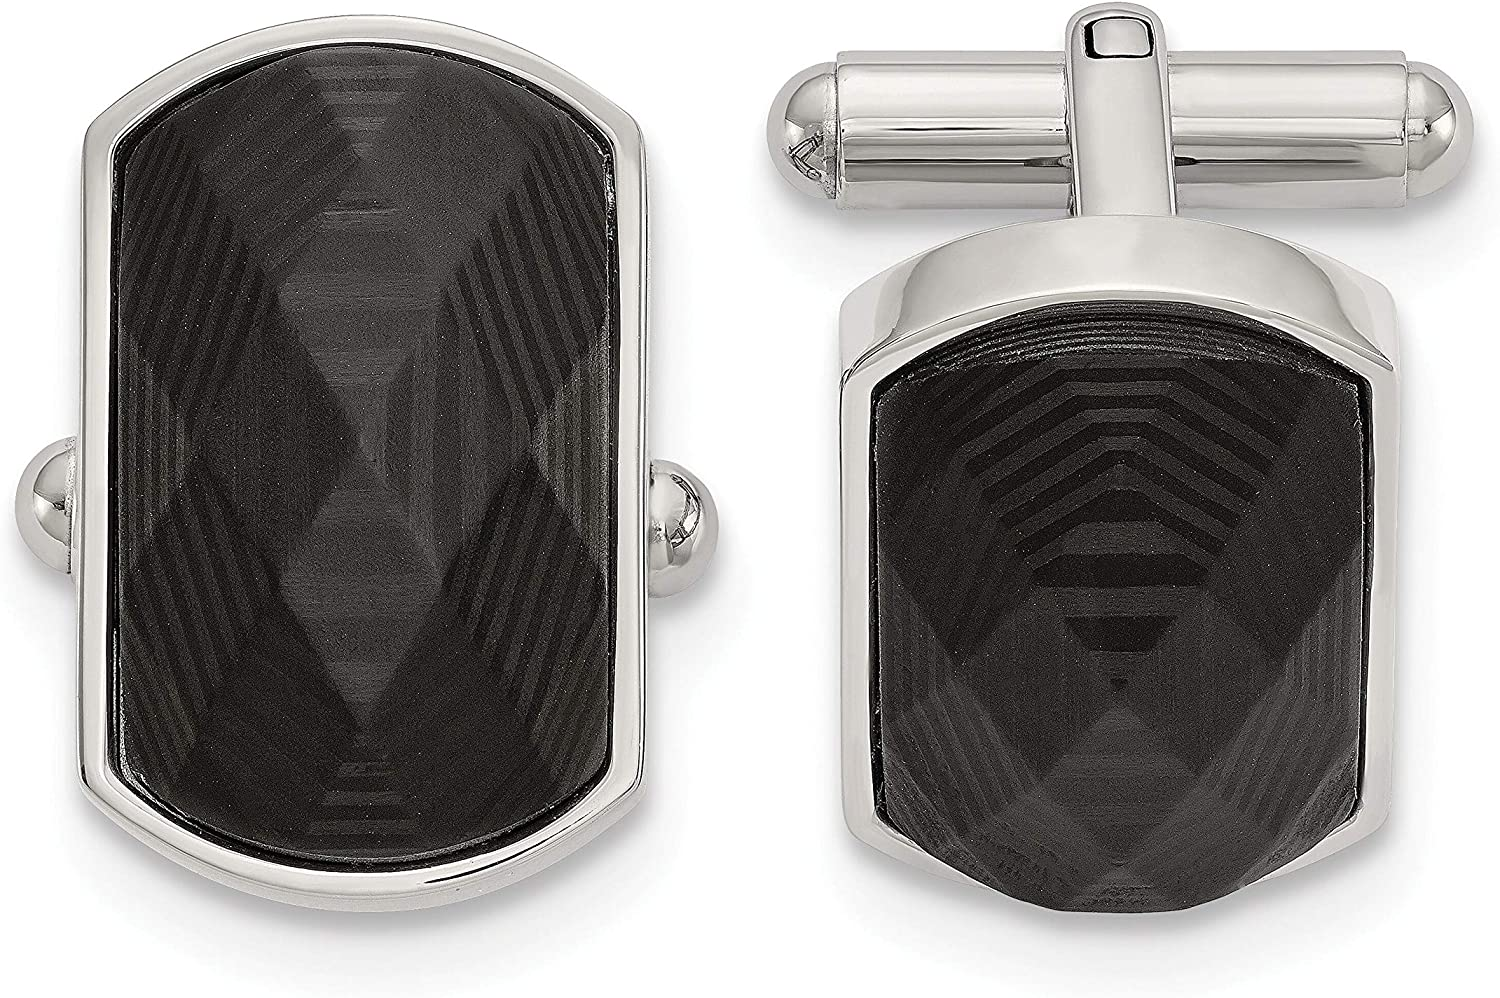 Stainless Steel Polished Solid Black Carbon Fiber Inlay Cuff Links Men's